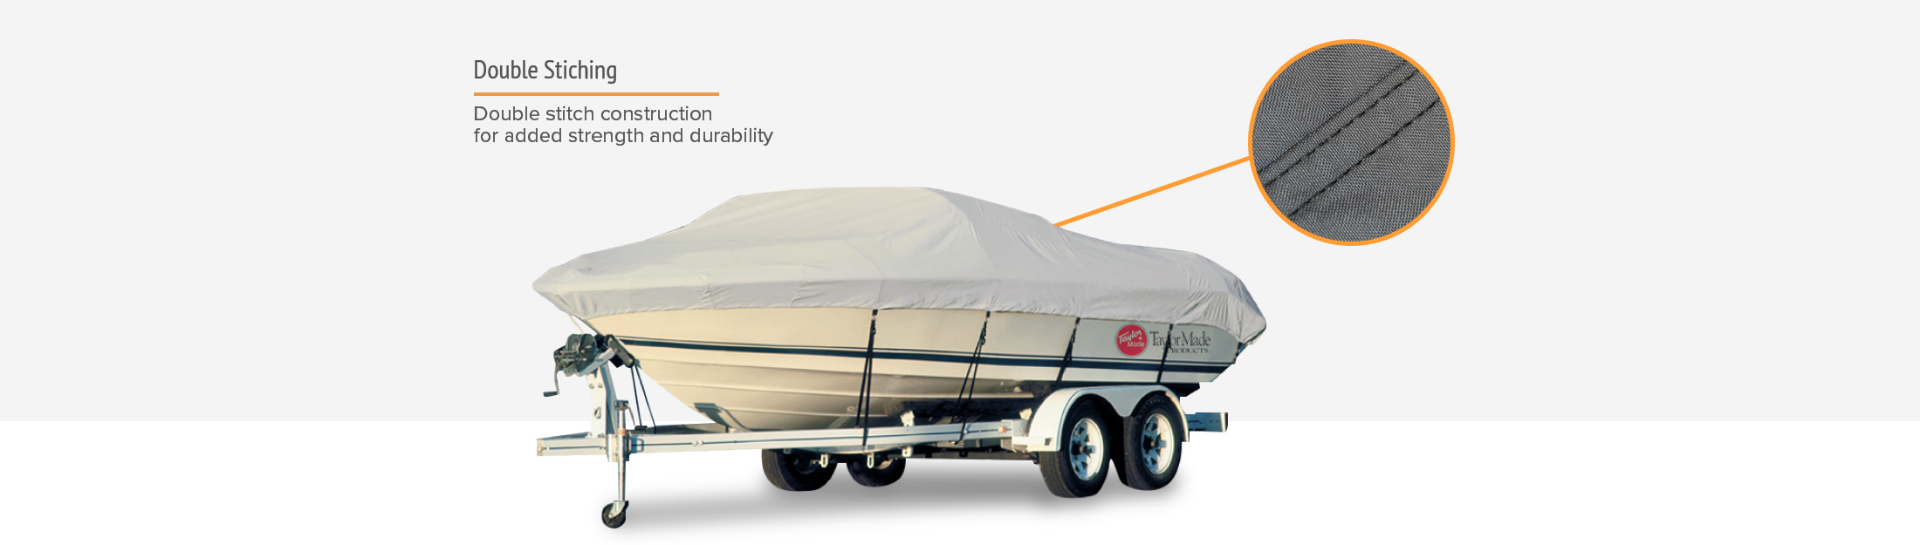 Taylor boat cover double stitching